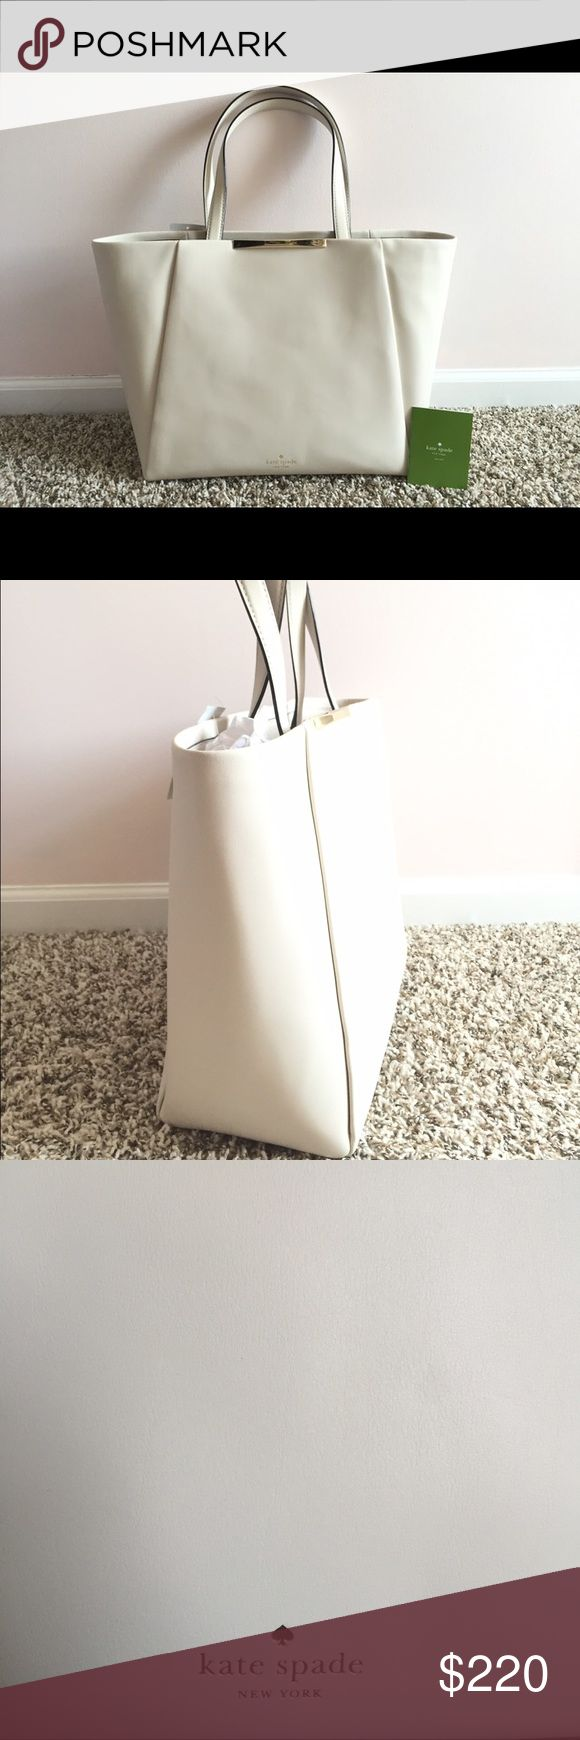 Kate Spade Lenora Camden Way cream tote bag This buttery soft, leather tote is ideal for wherever the day takes you--work, school, juggling kids' schedules, this bag can handle (and hold) it all. And you'll look incredibly elegant while doing it! This item is in beautiful, brand new with tags condition. kate spade Bags Totes